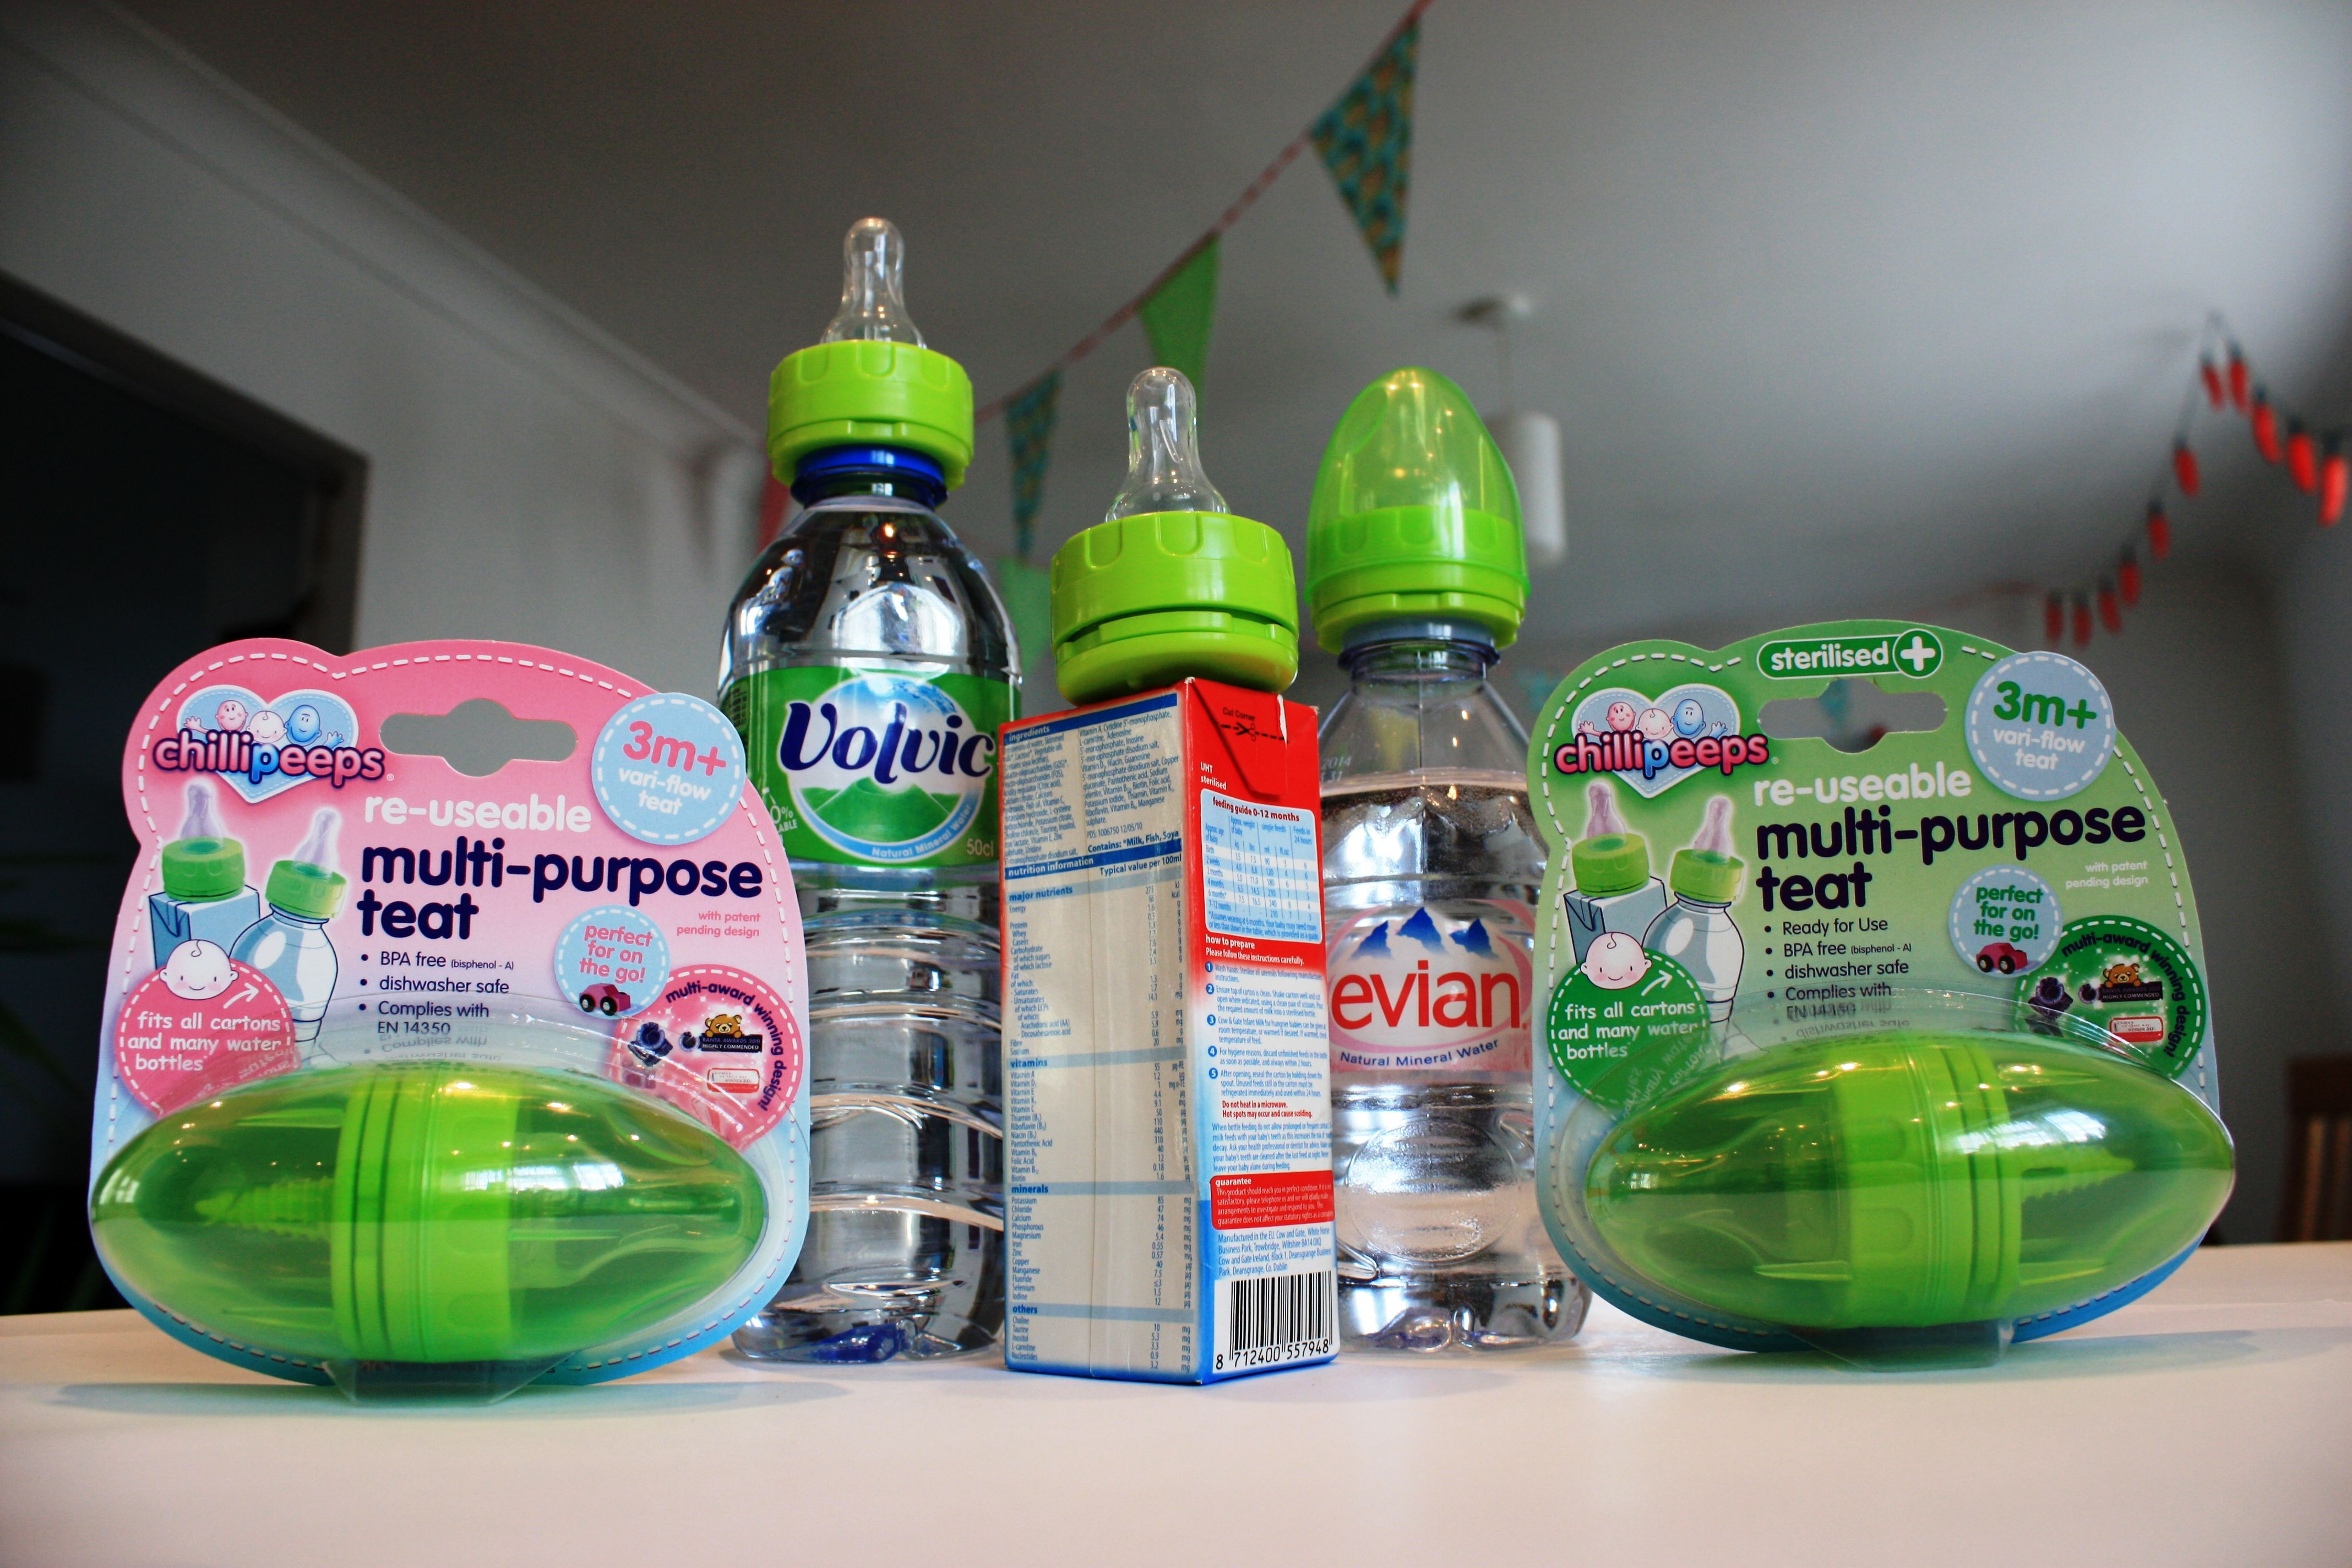 Chillipeeps Teats attach directly to formula cartons and Volvic and Evian water bottles perfect for